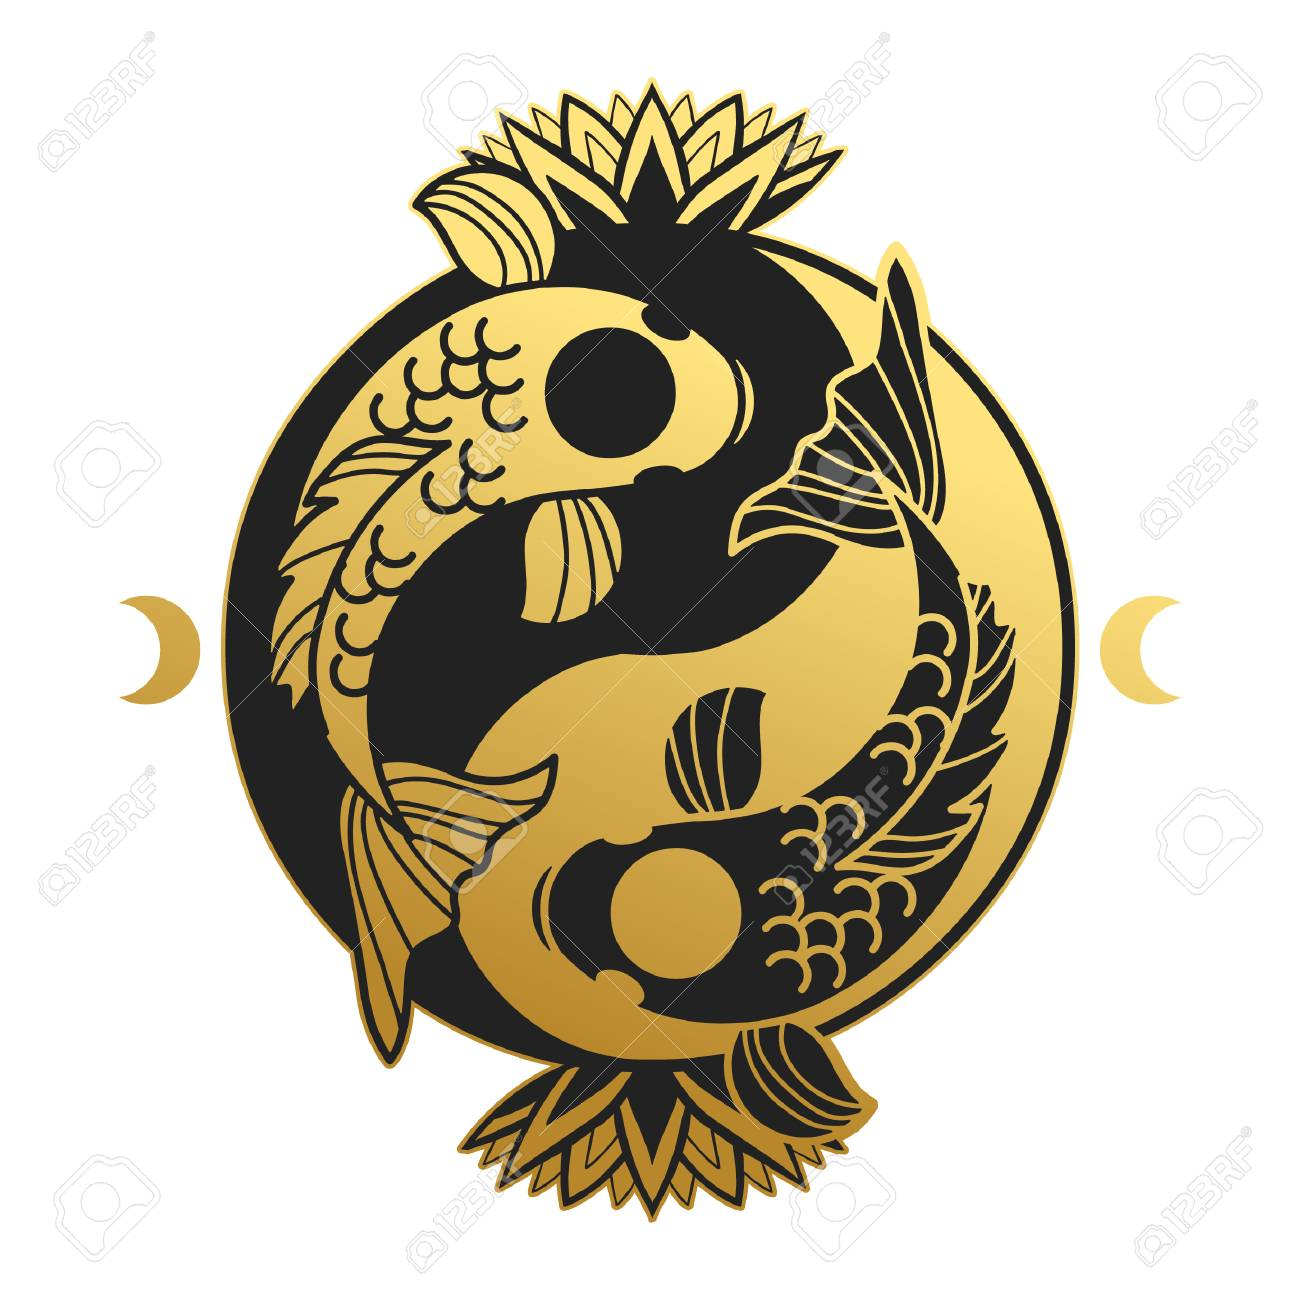 Yin And Yang Symbol With Koi Fishes Vector Illustration Royalty Free Cliparts Vectors And Stock Illustration Image 97805696